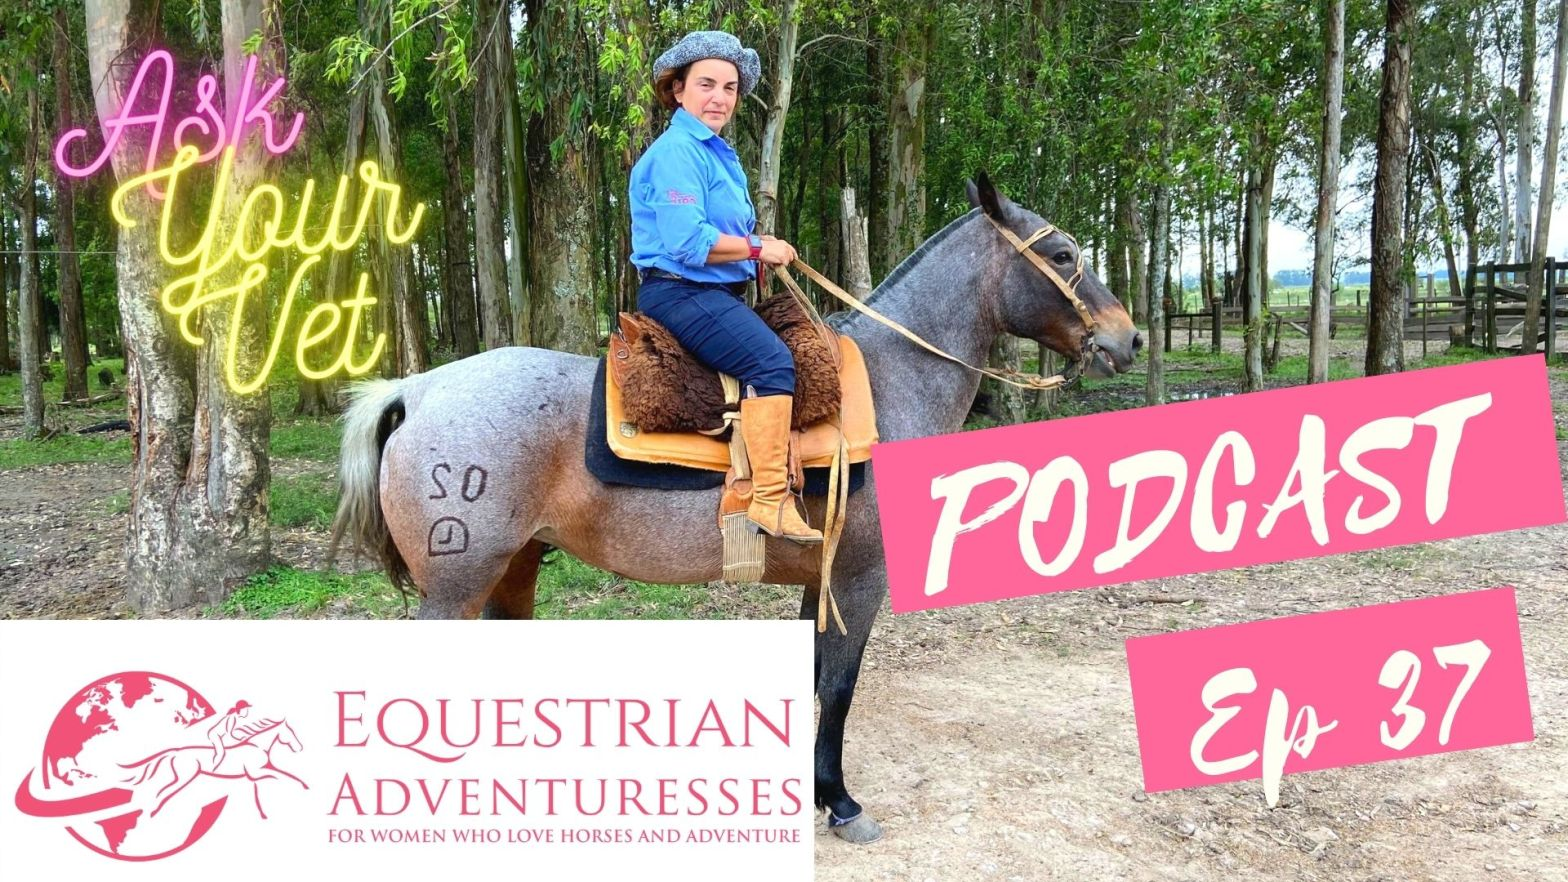 Equestrian Adventuresses Travel and Horse Podcast Ep 37 - Ask your Vet - Introducing Adriana, horse vet from Brazil